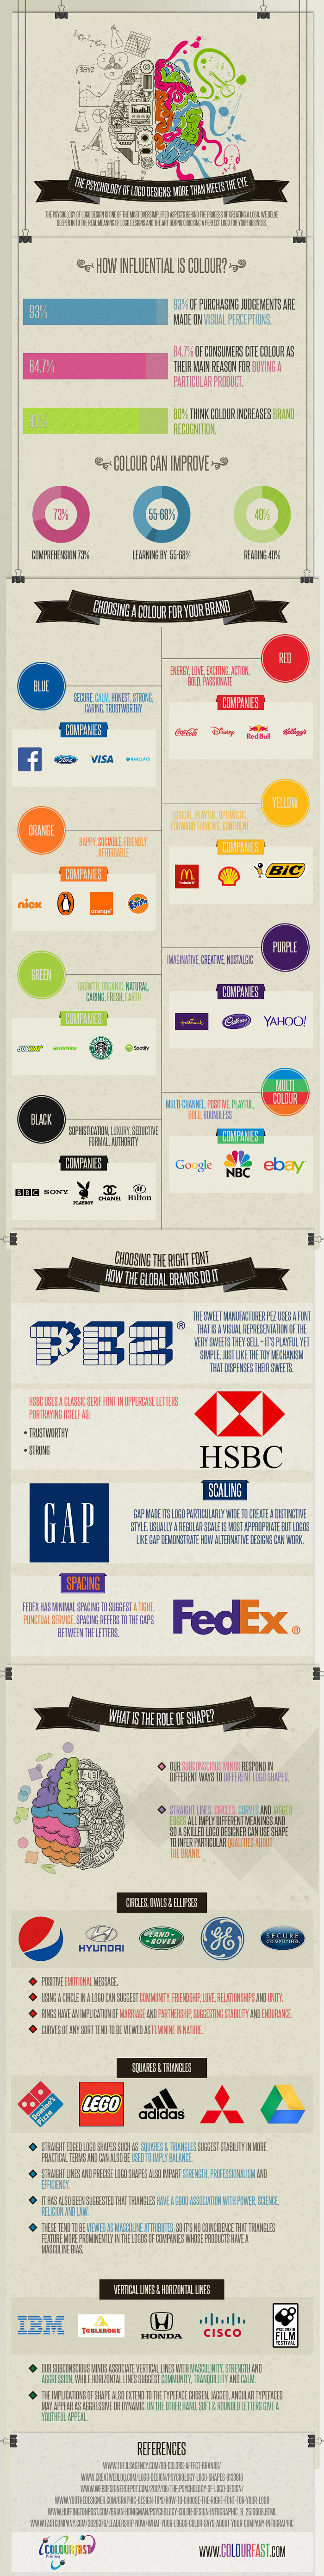 infografik-the-psychology-of-logo-designs-by-colourfast (1)